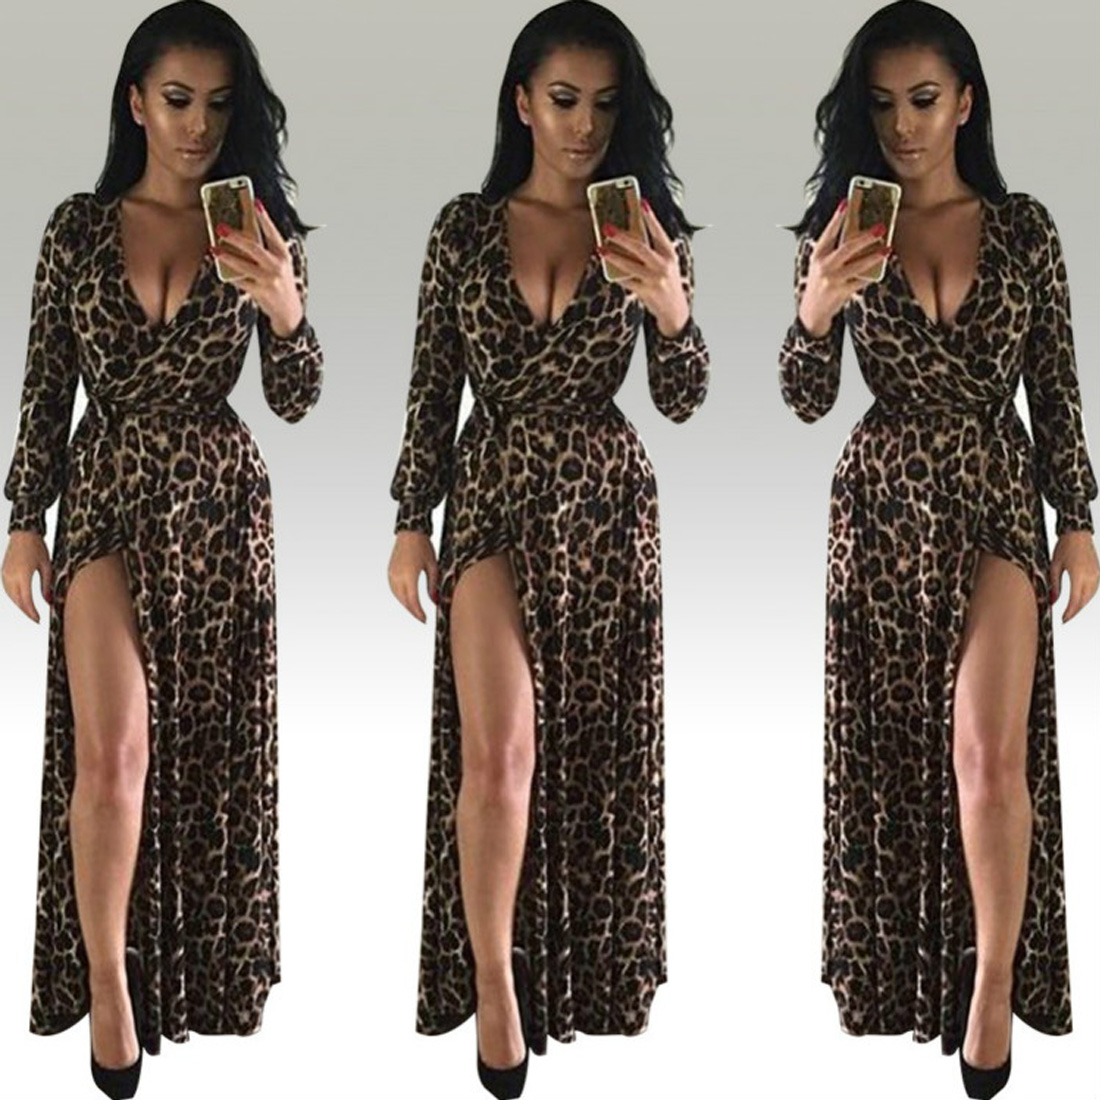 YJ Fashion High Slit Boho Maxi Dress Women Leopard Printed Sexy 2017 Summer Dress Deep V Neck Long Sleeve Elegant Party Dresses in Dresses from Women 39 s Clothing